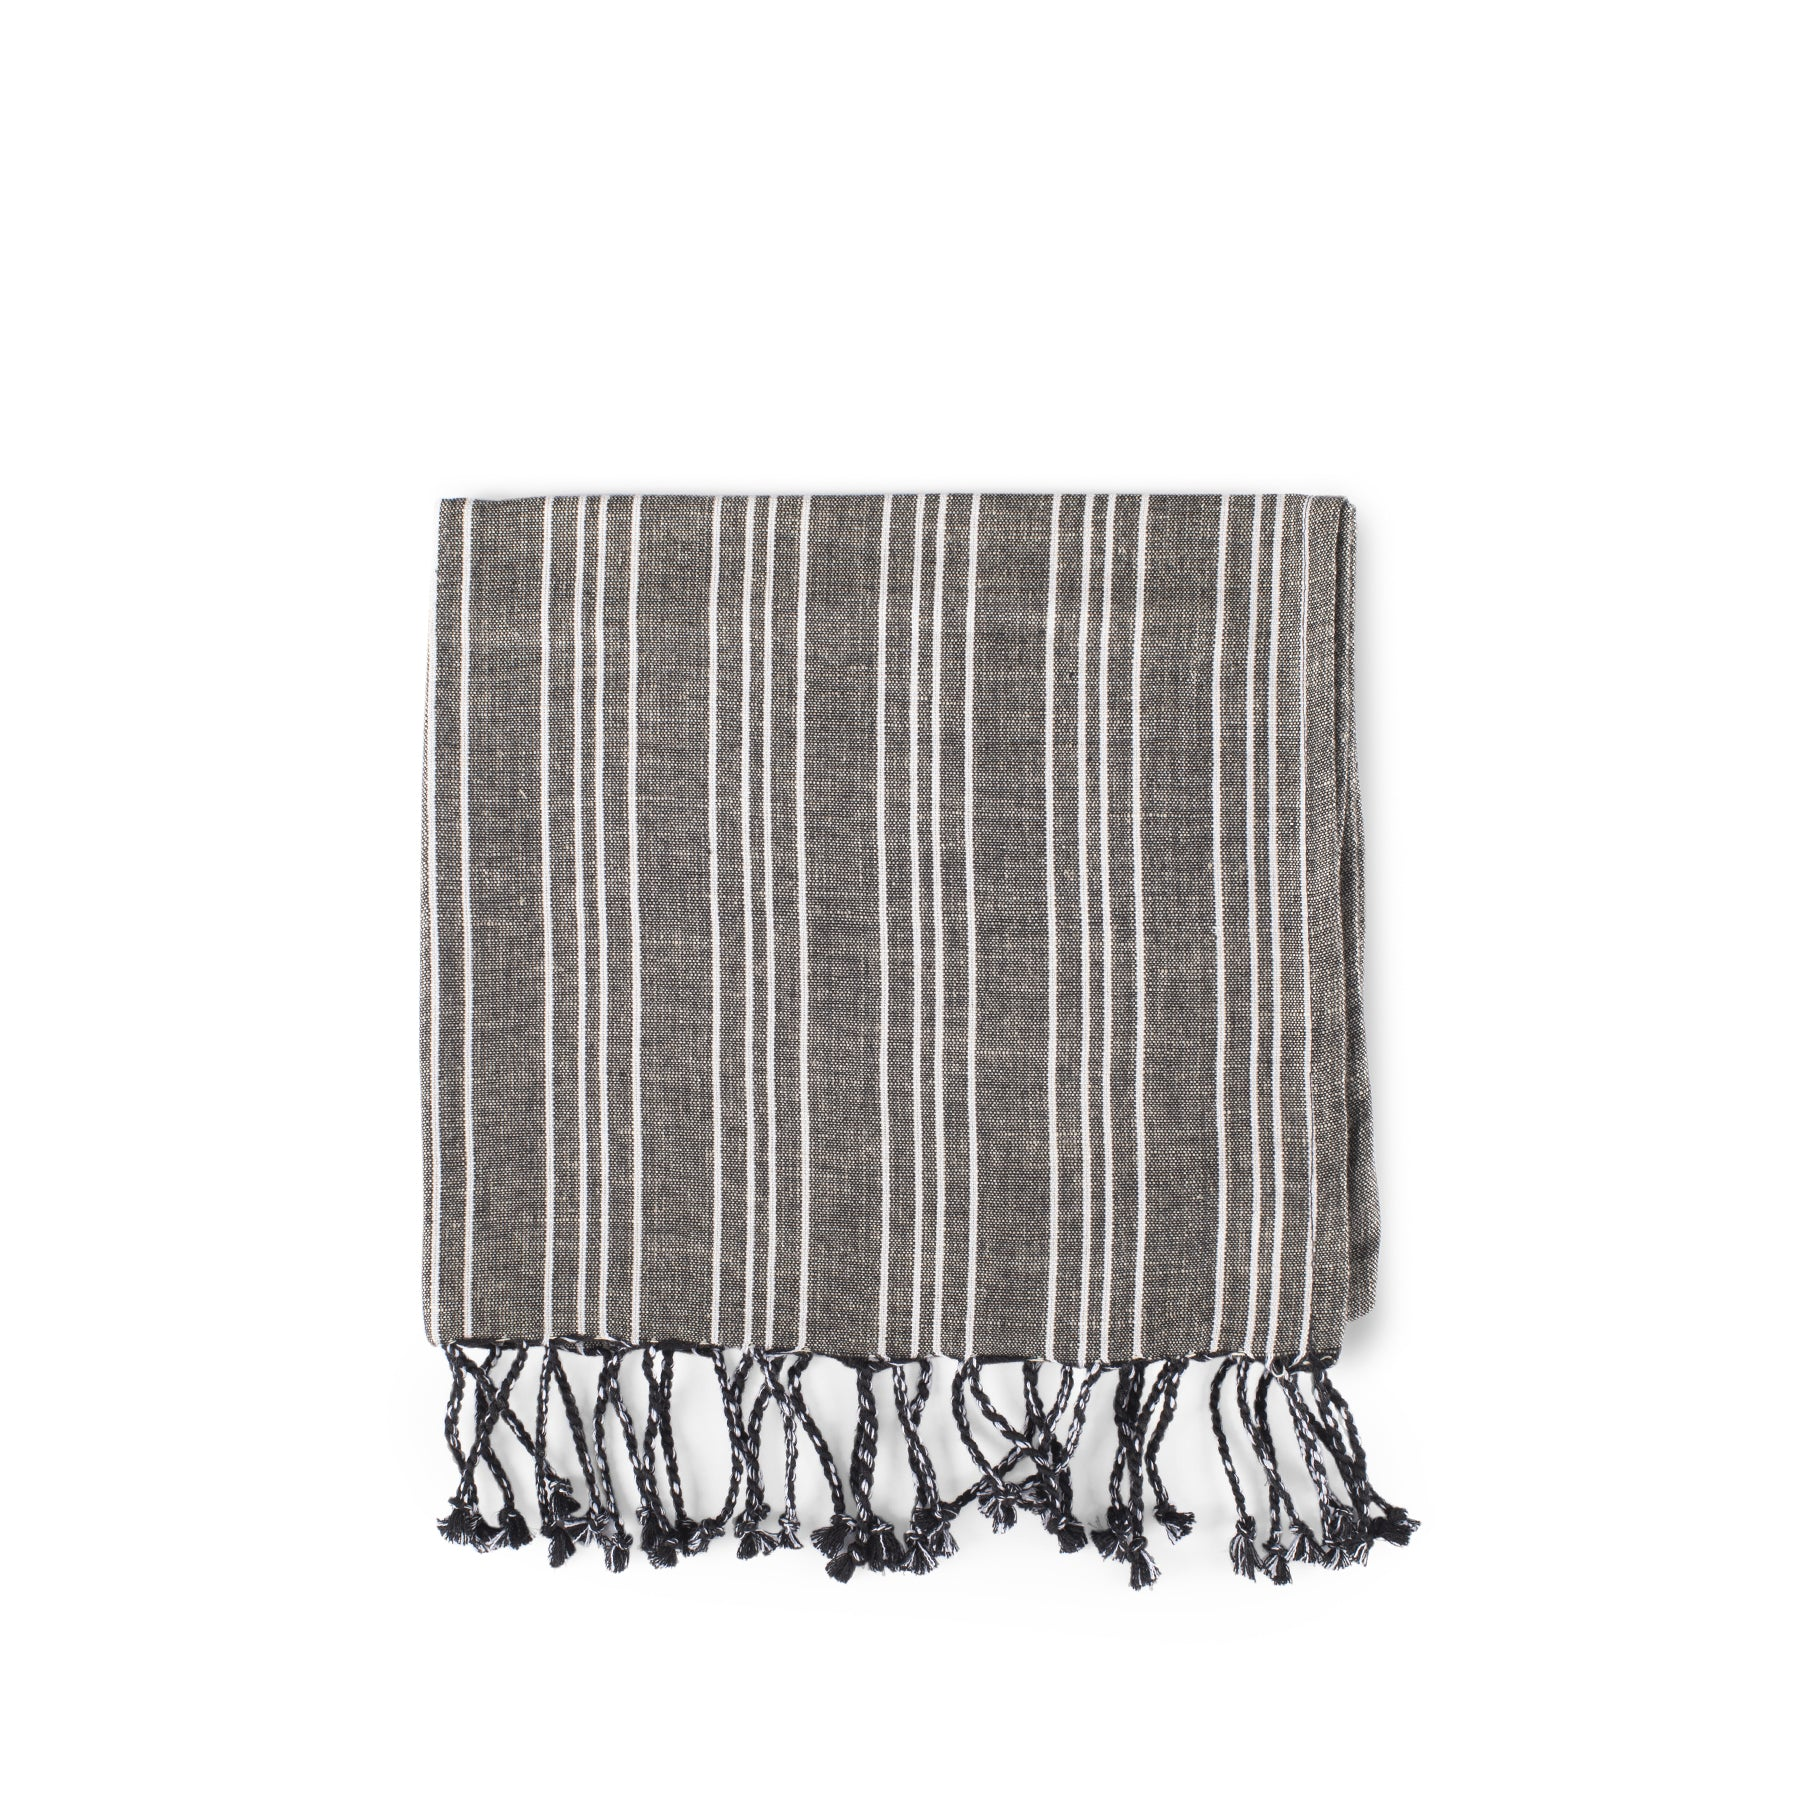 Cotton Linen Ticking Stripe Tea Towel in Black with Ivory Zoom Image 1